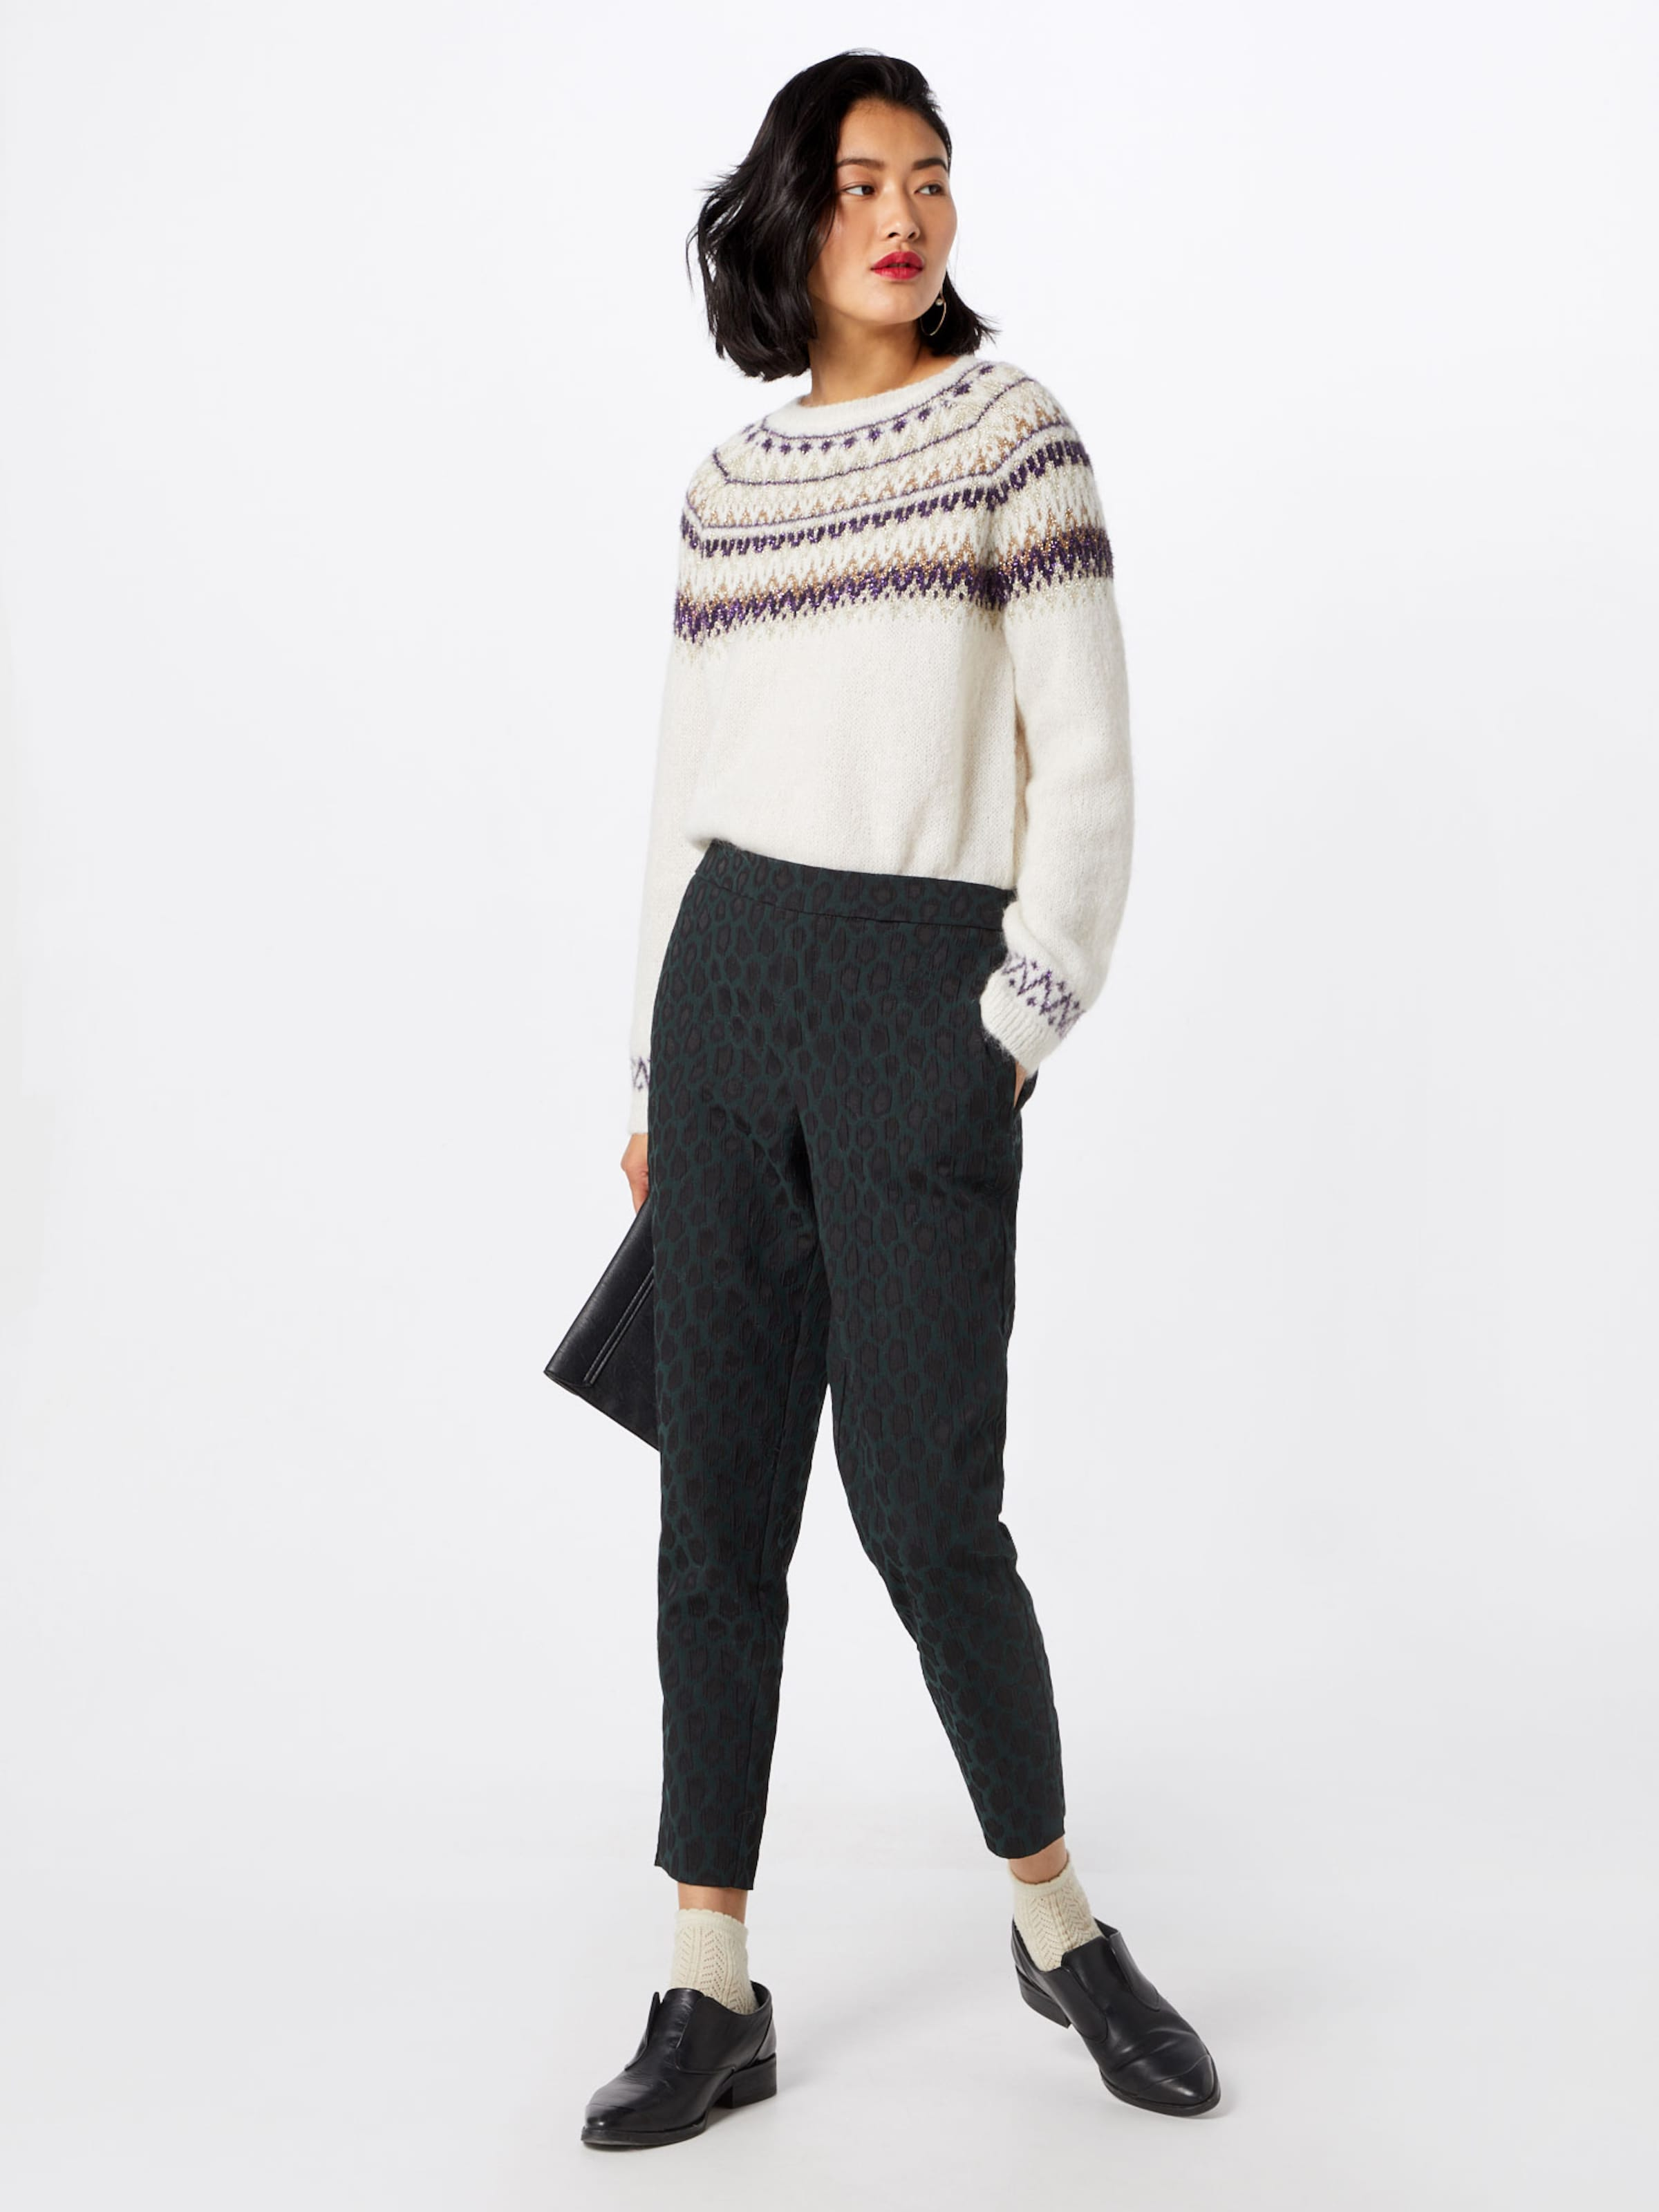 Pullover In Jeans Offwhite Liu Jo NwkX0On8P